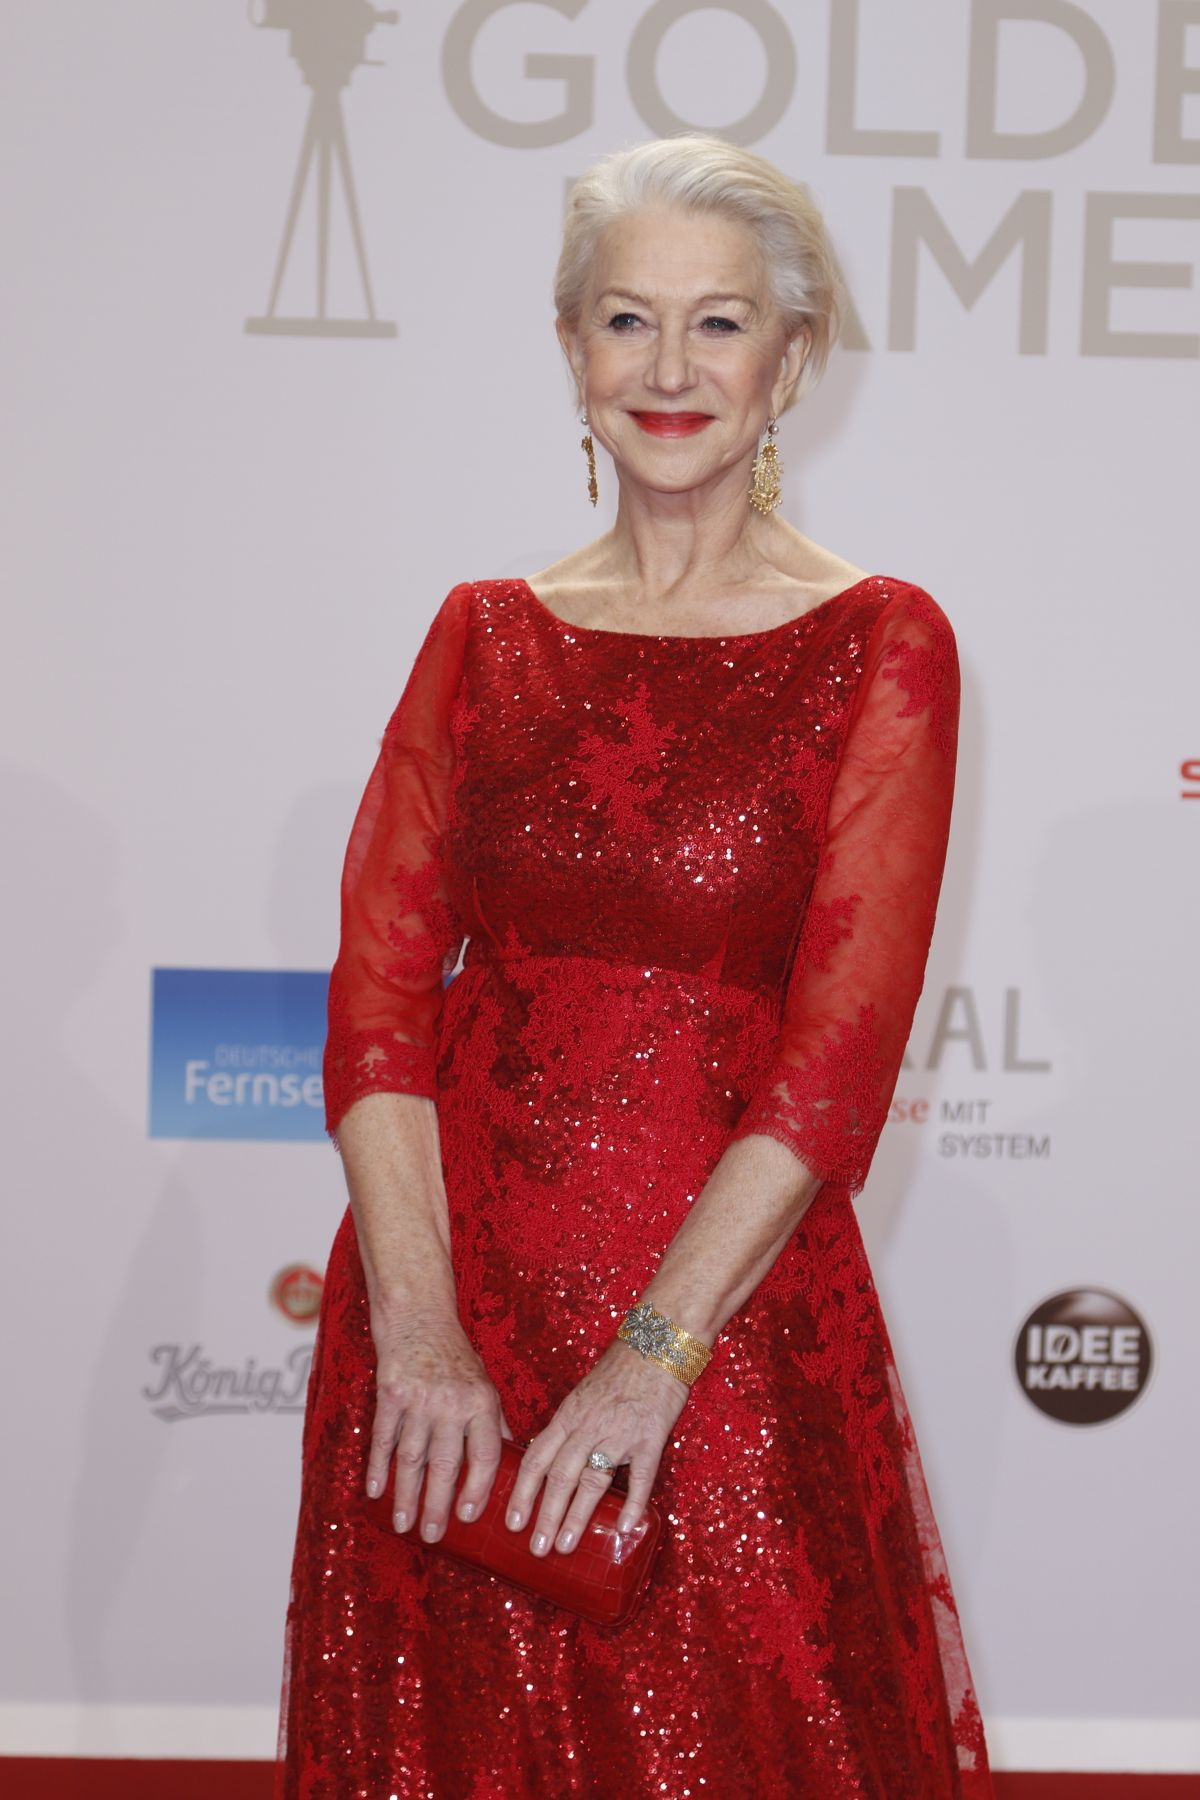 HELEN MIRREN at 51st Annual Goldene Kamera Award in Hamburg  02/06/2016